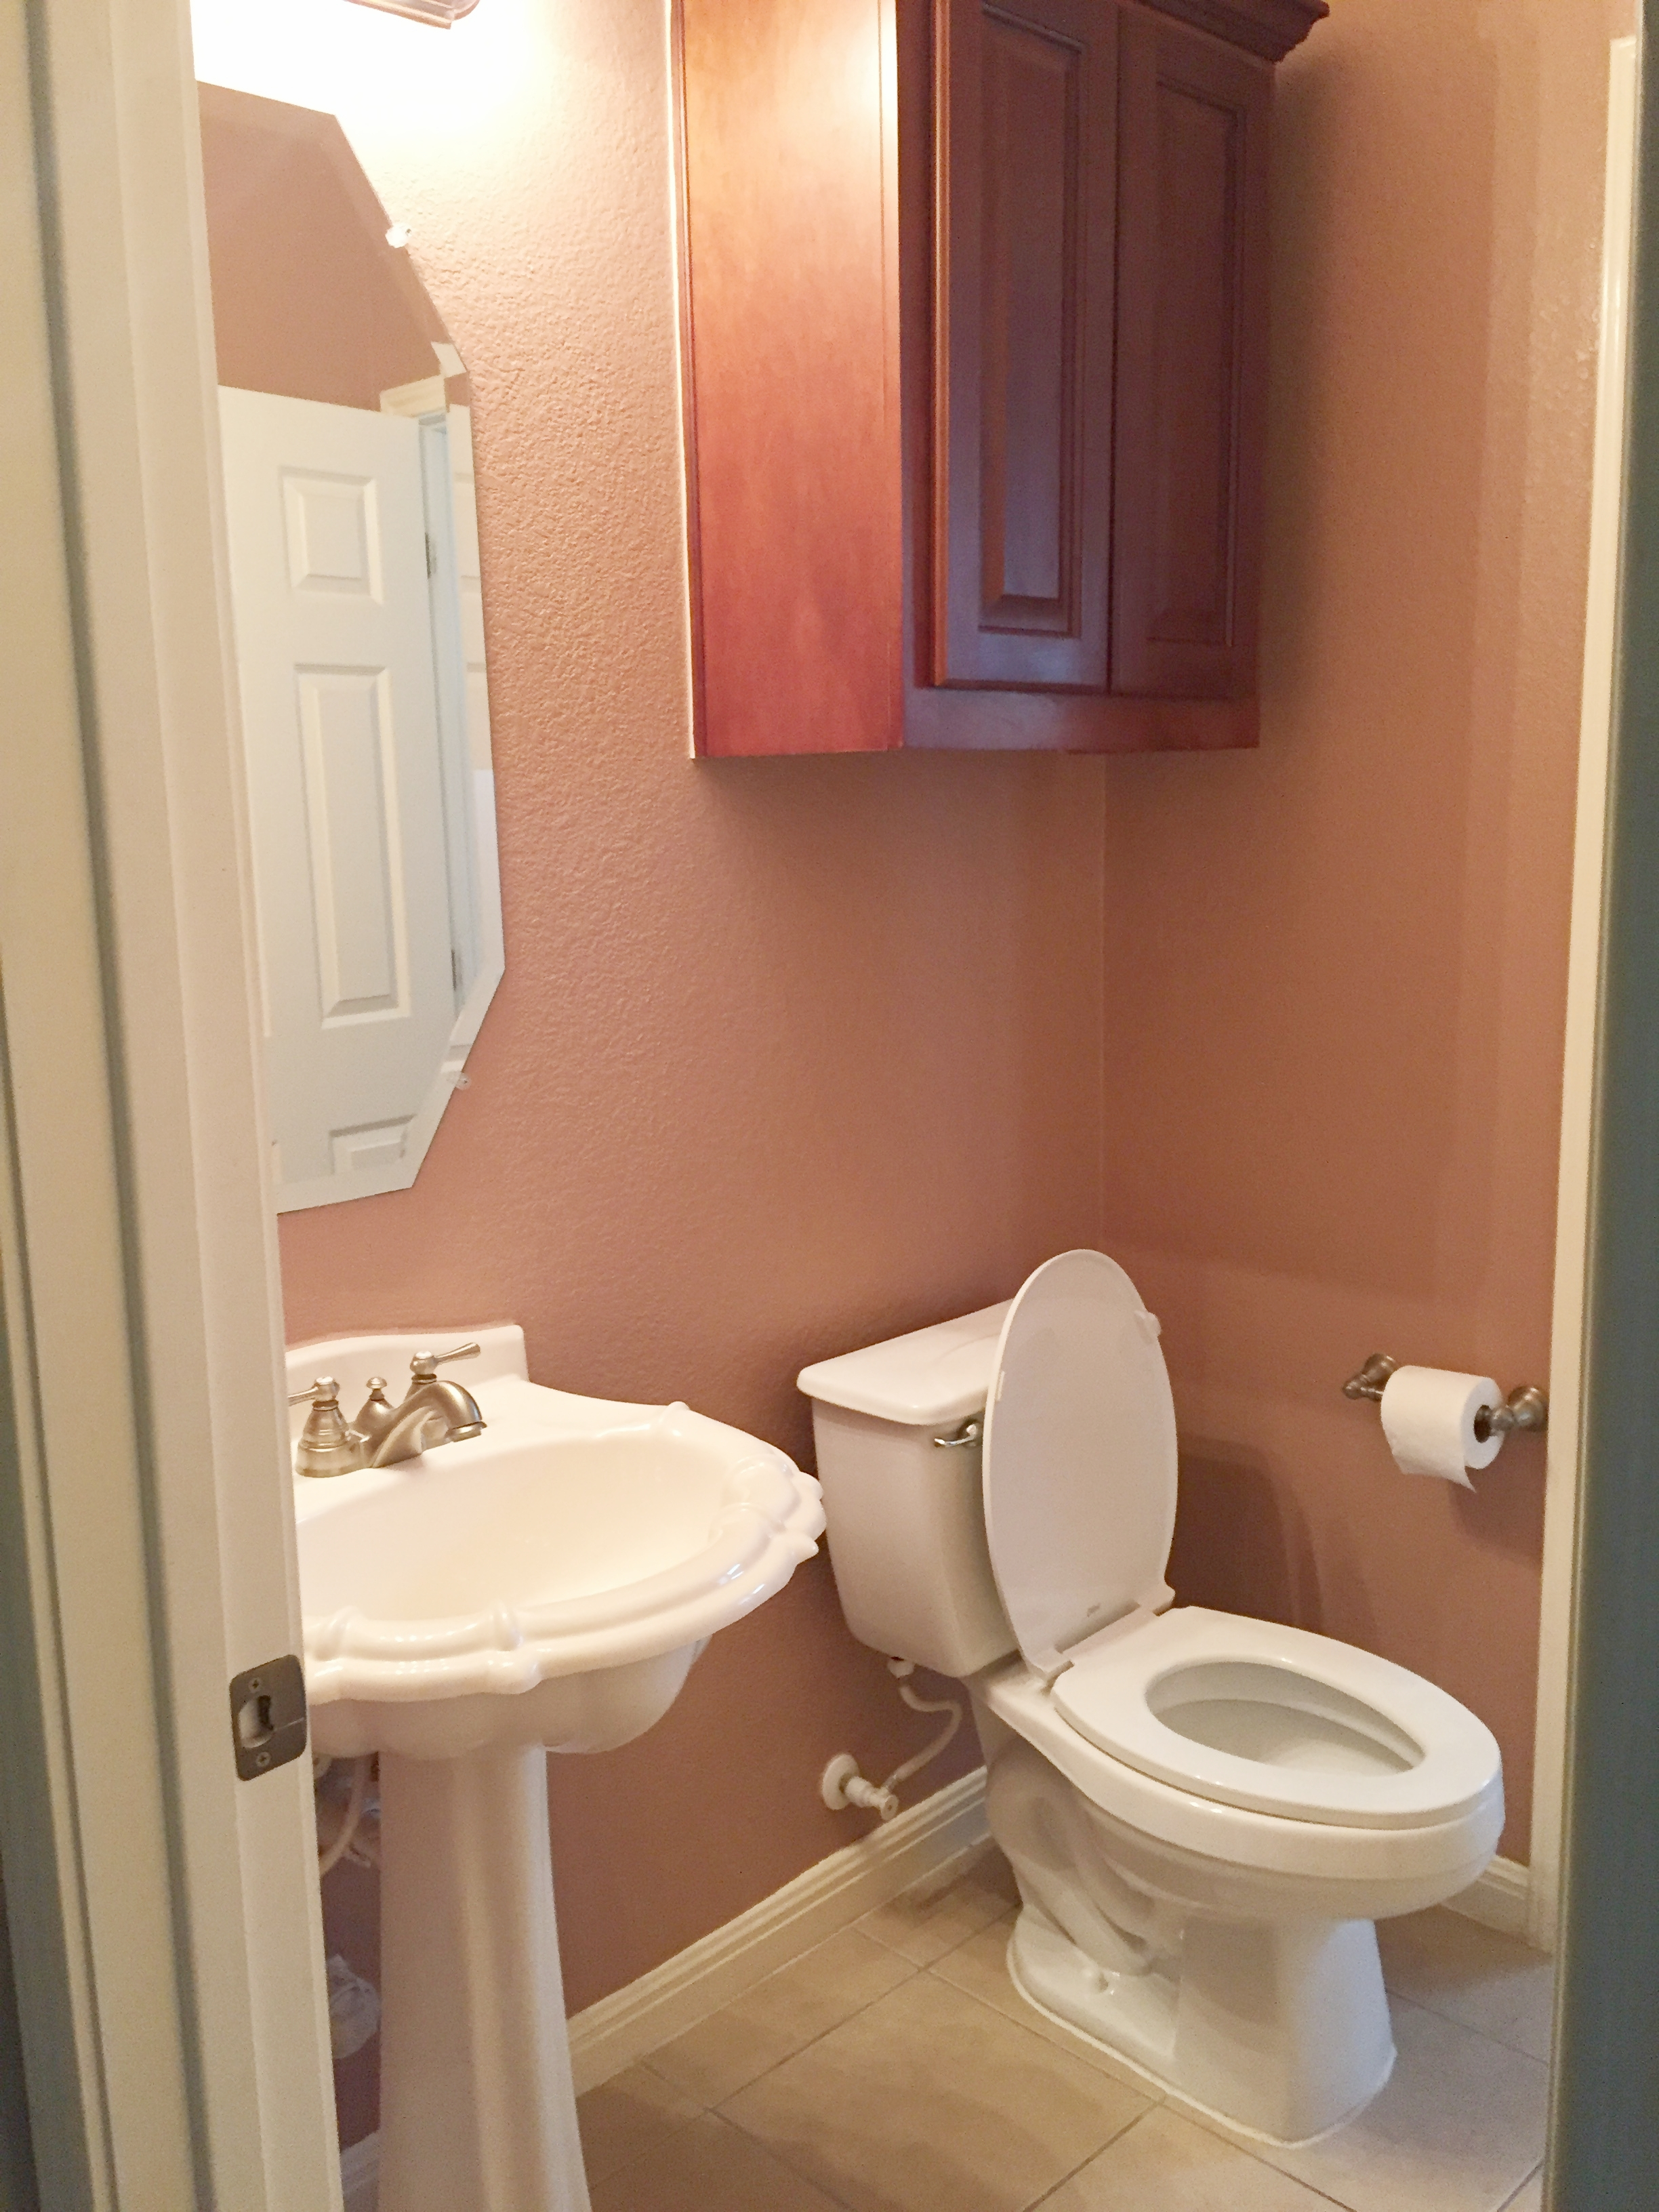 bathroom before.JPG